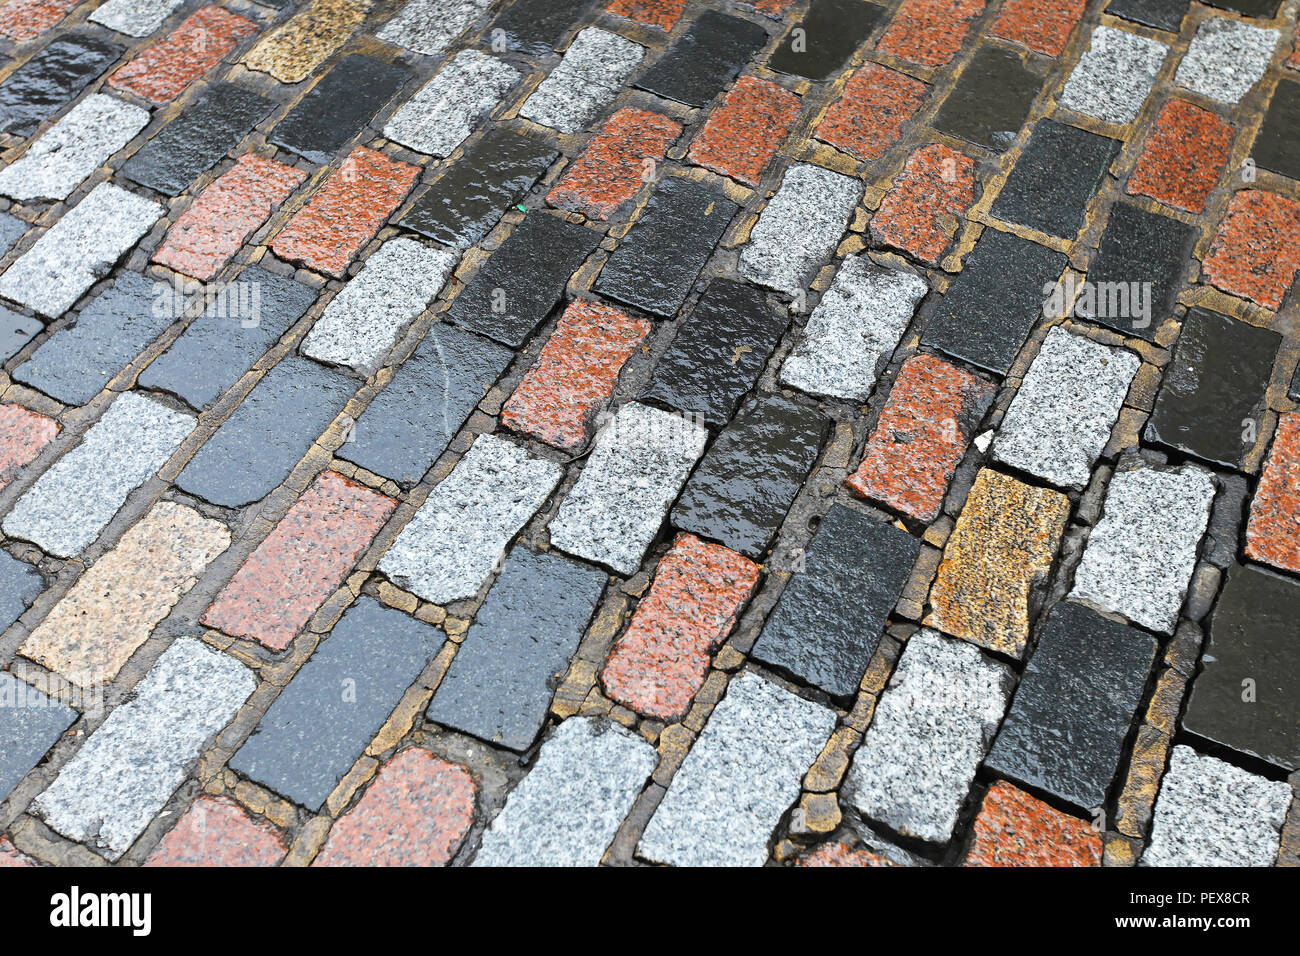 Granite stone pavement bricks in London Stock Photo